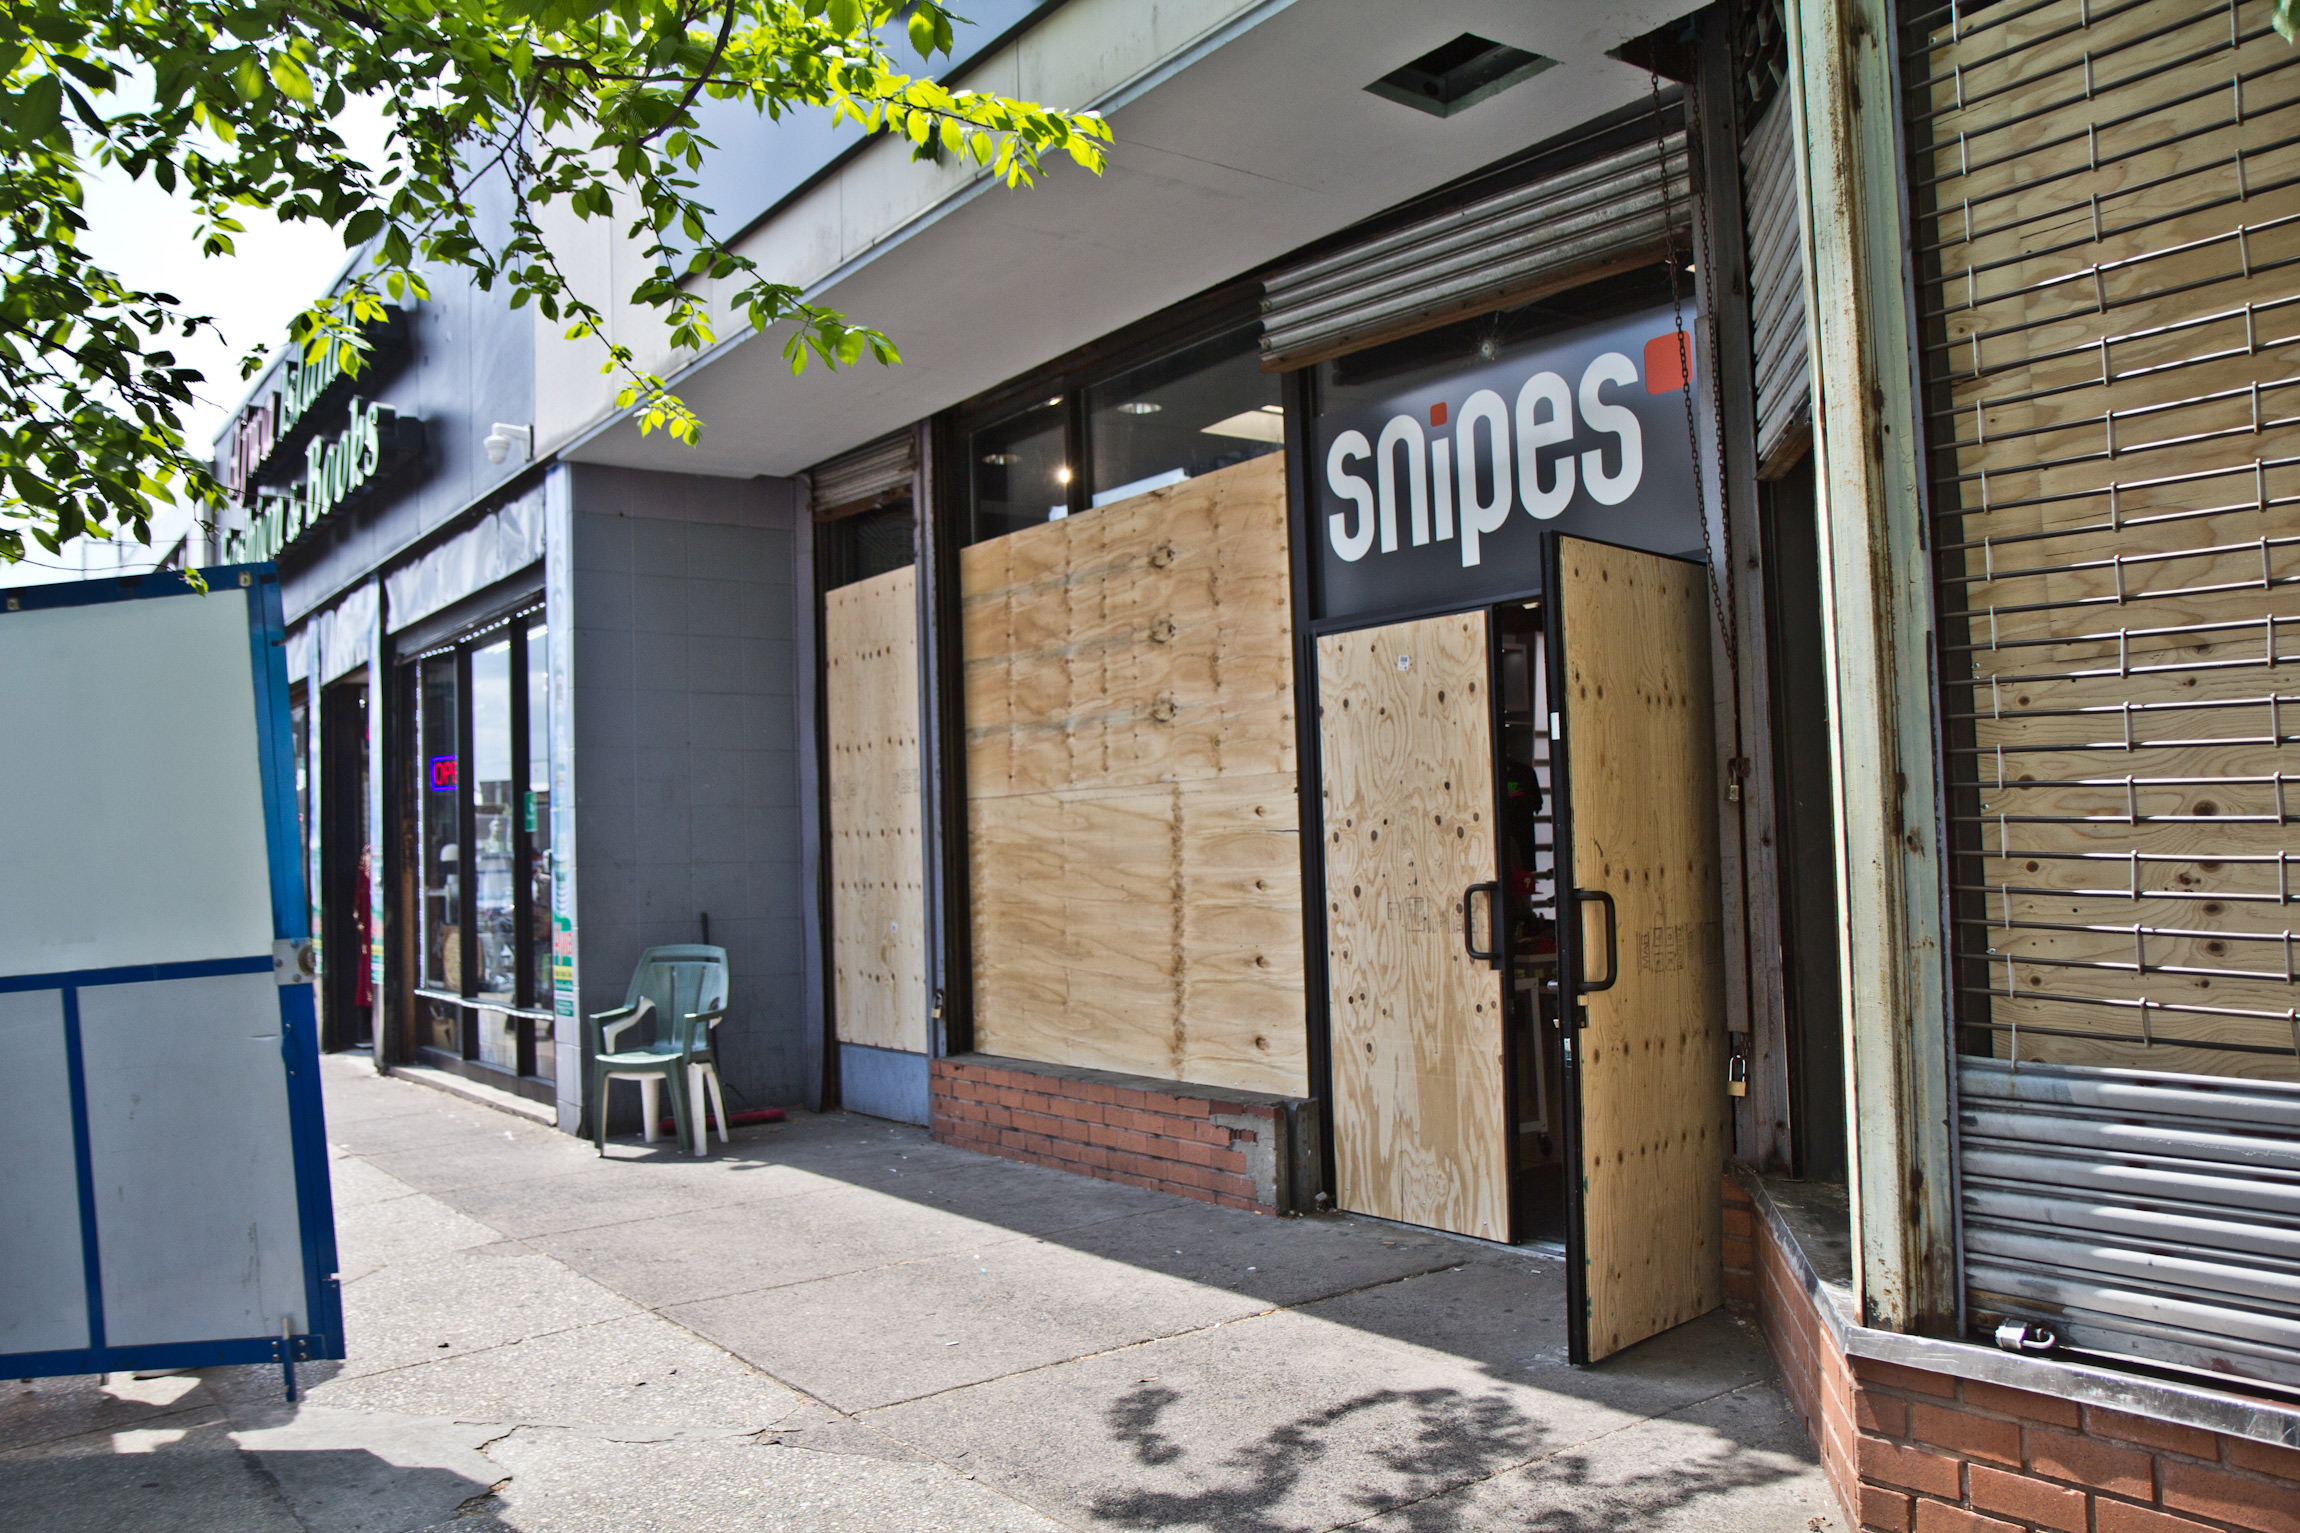 Snipes, Foot Locker and the Puma store on 52nd Street in West Philadelphia remained boarded up the day after the verdict was delivered in the trial of Derek Chauvin on April 21, 2021. (Kimberly Paynter/WHYY)